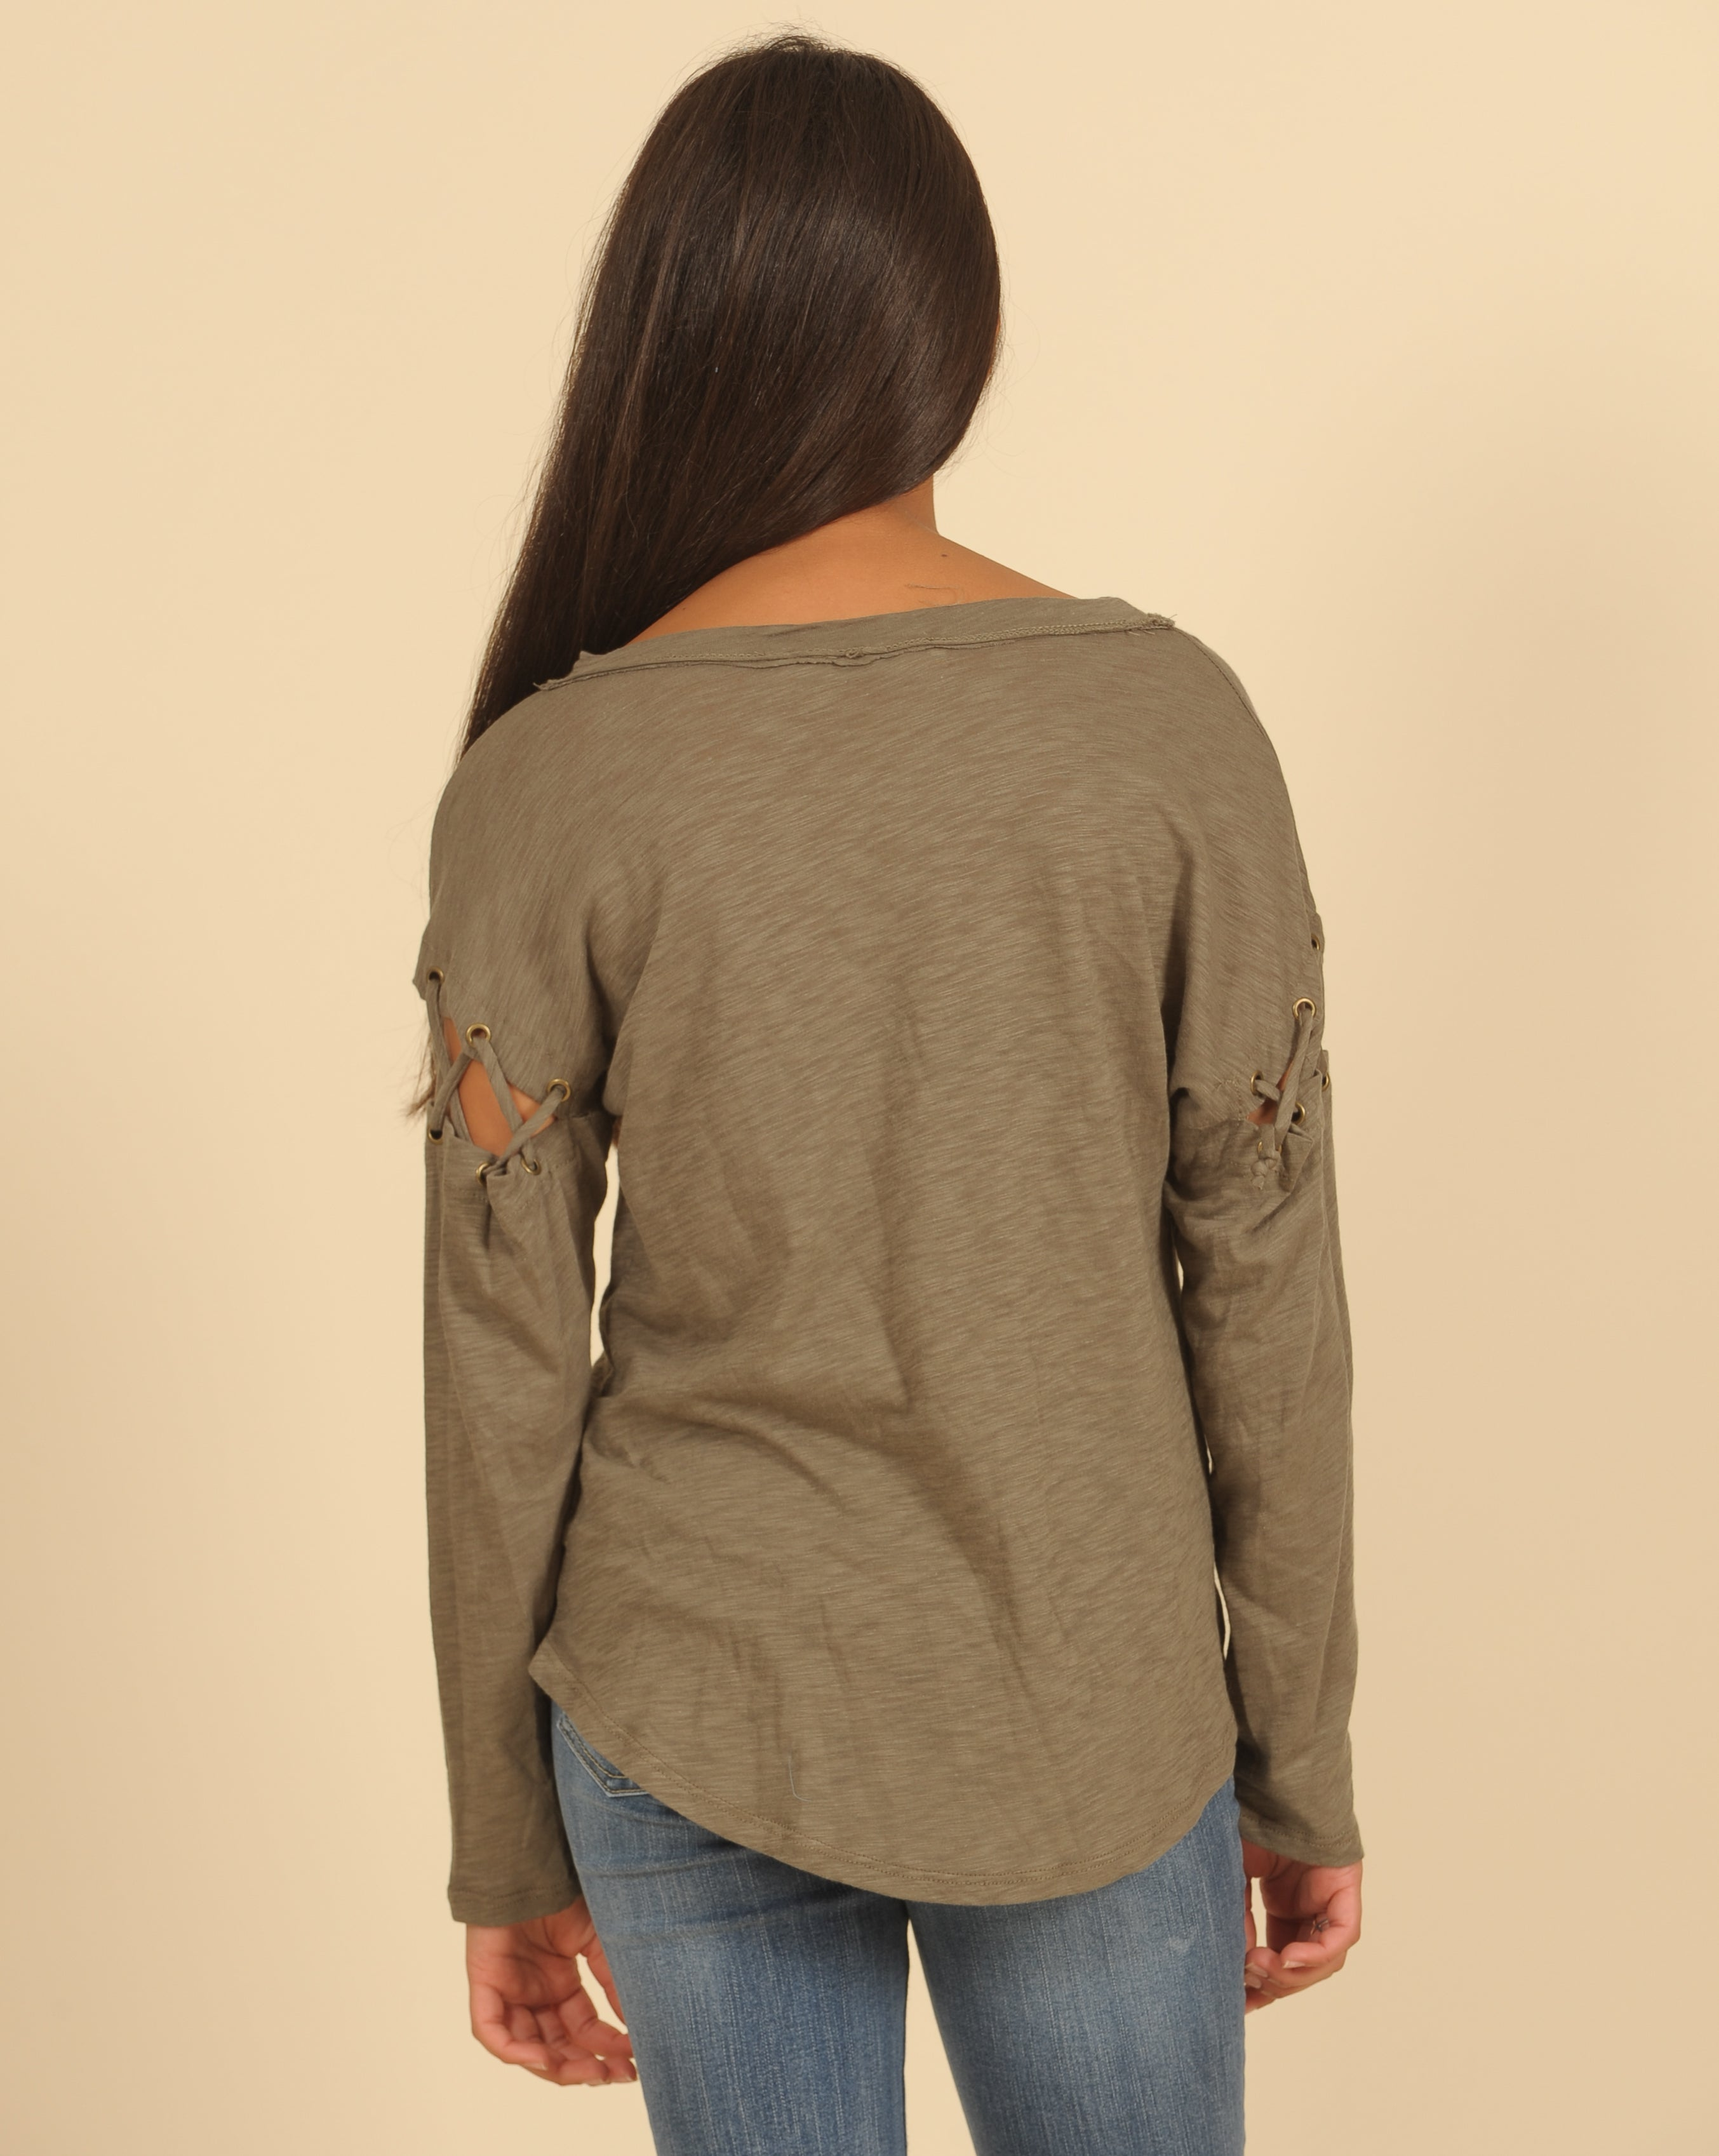 Lace Up Long Sleeve Splatter Top